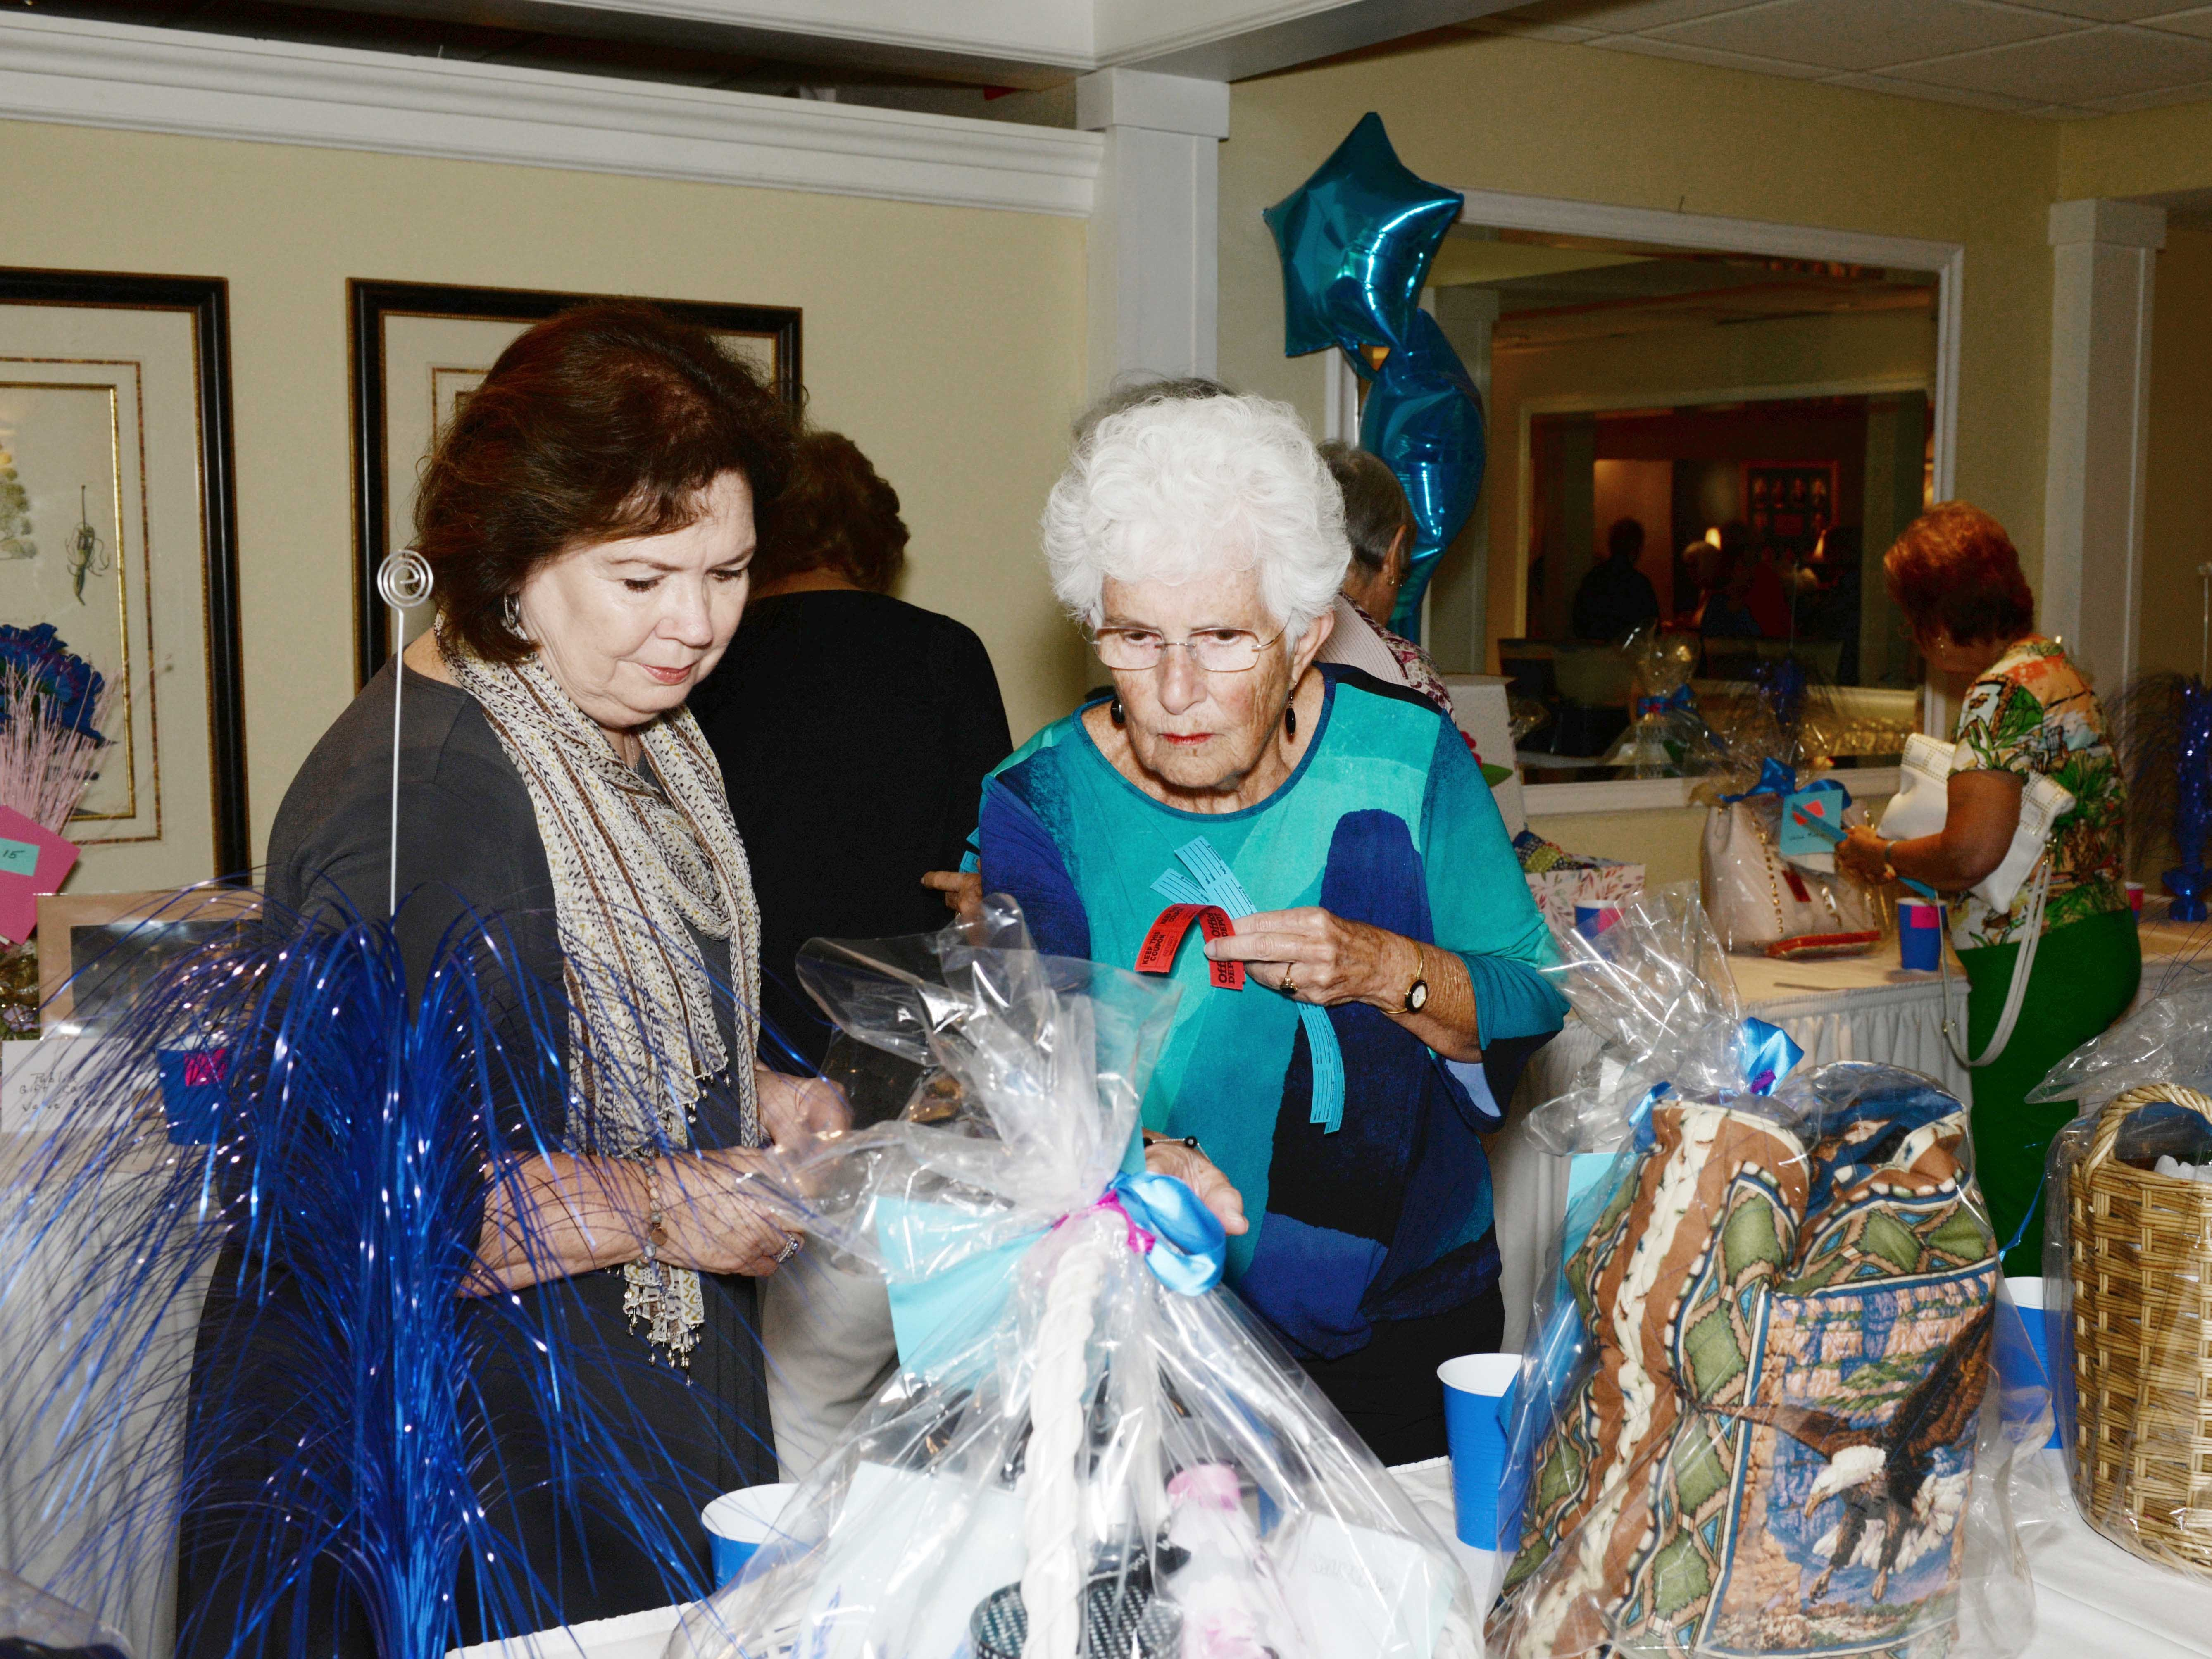 Sara Wilcox, left, and Jane Buss look over the raffle prizes at the American Association of University Women Stuart Branch's 45th anniversary luncheon and fashion show.